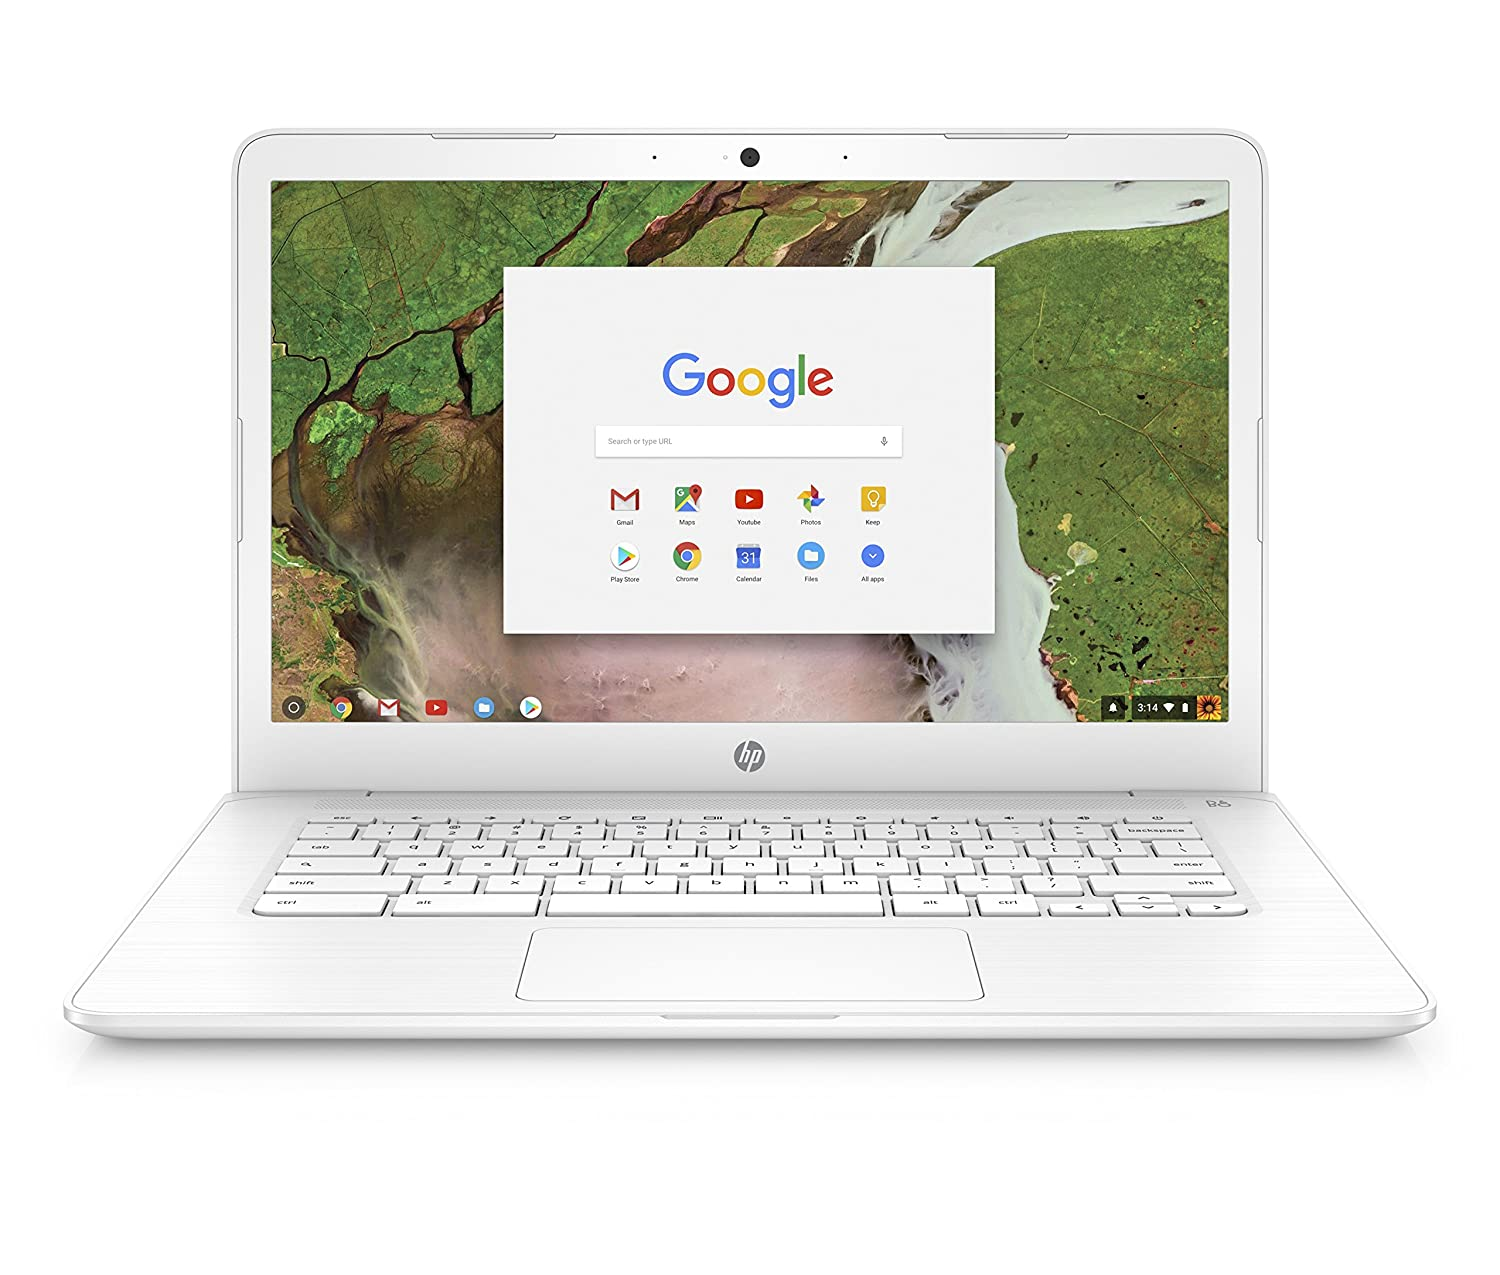 HP Chromebook 14-inch Laptop with 180-degree axis